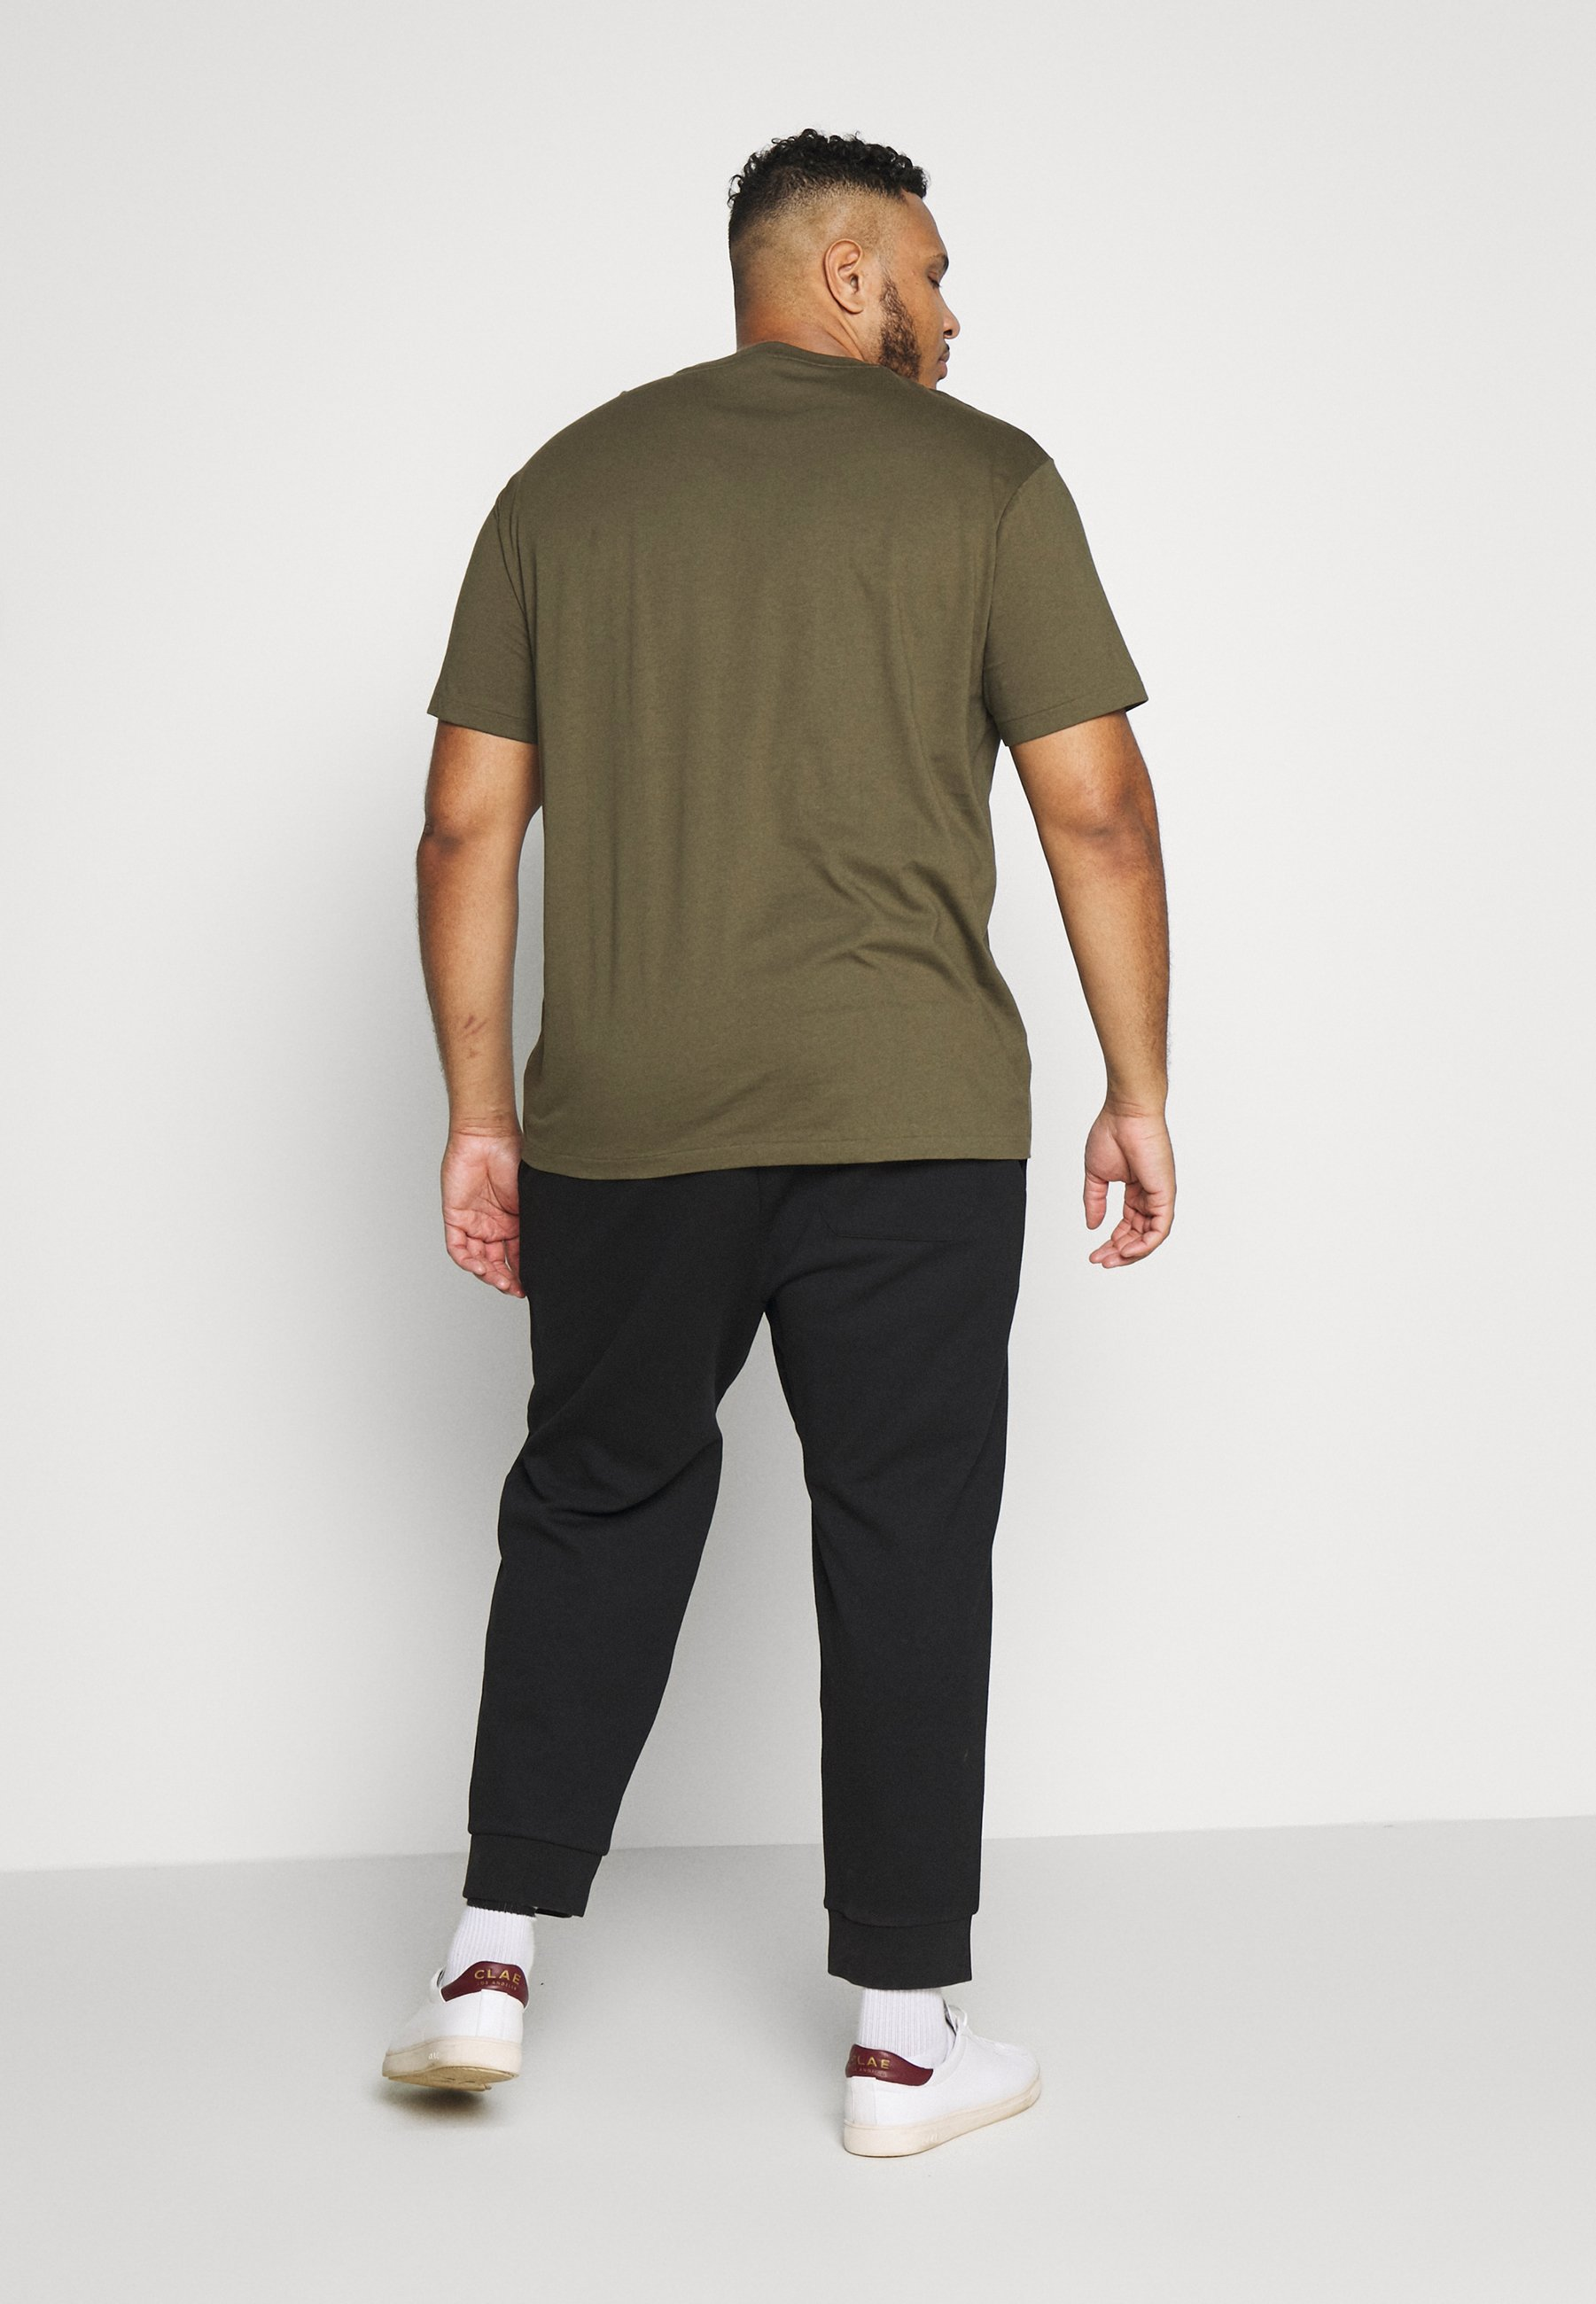 Polo Ralph Lauren Big & Tall T-shirt basic - defender green